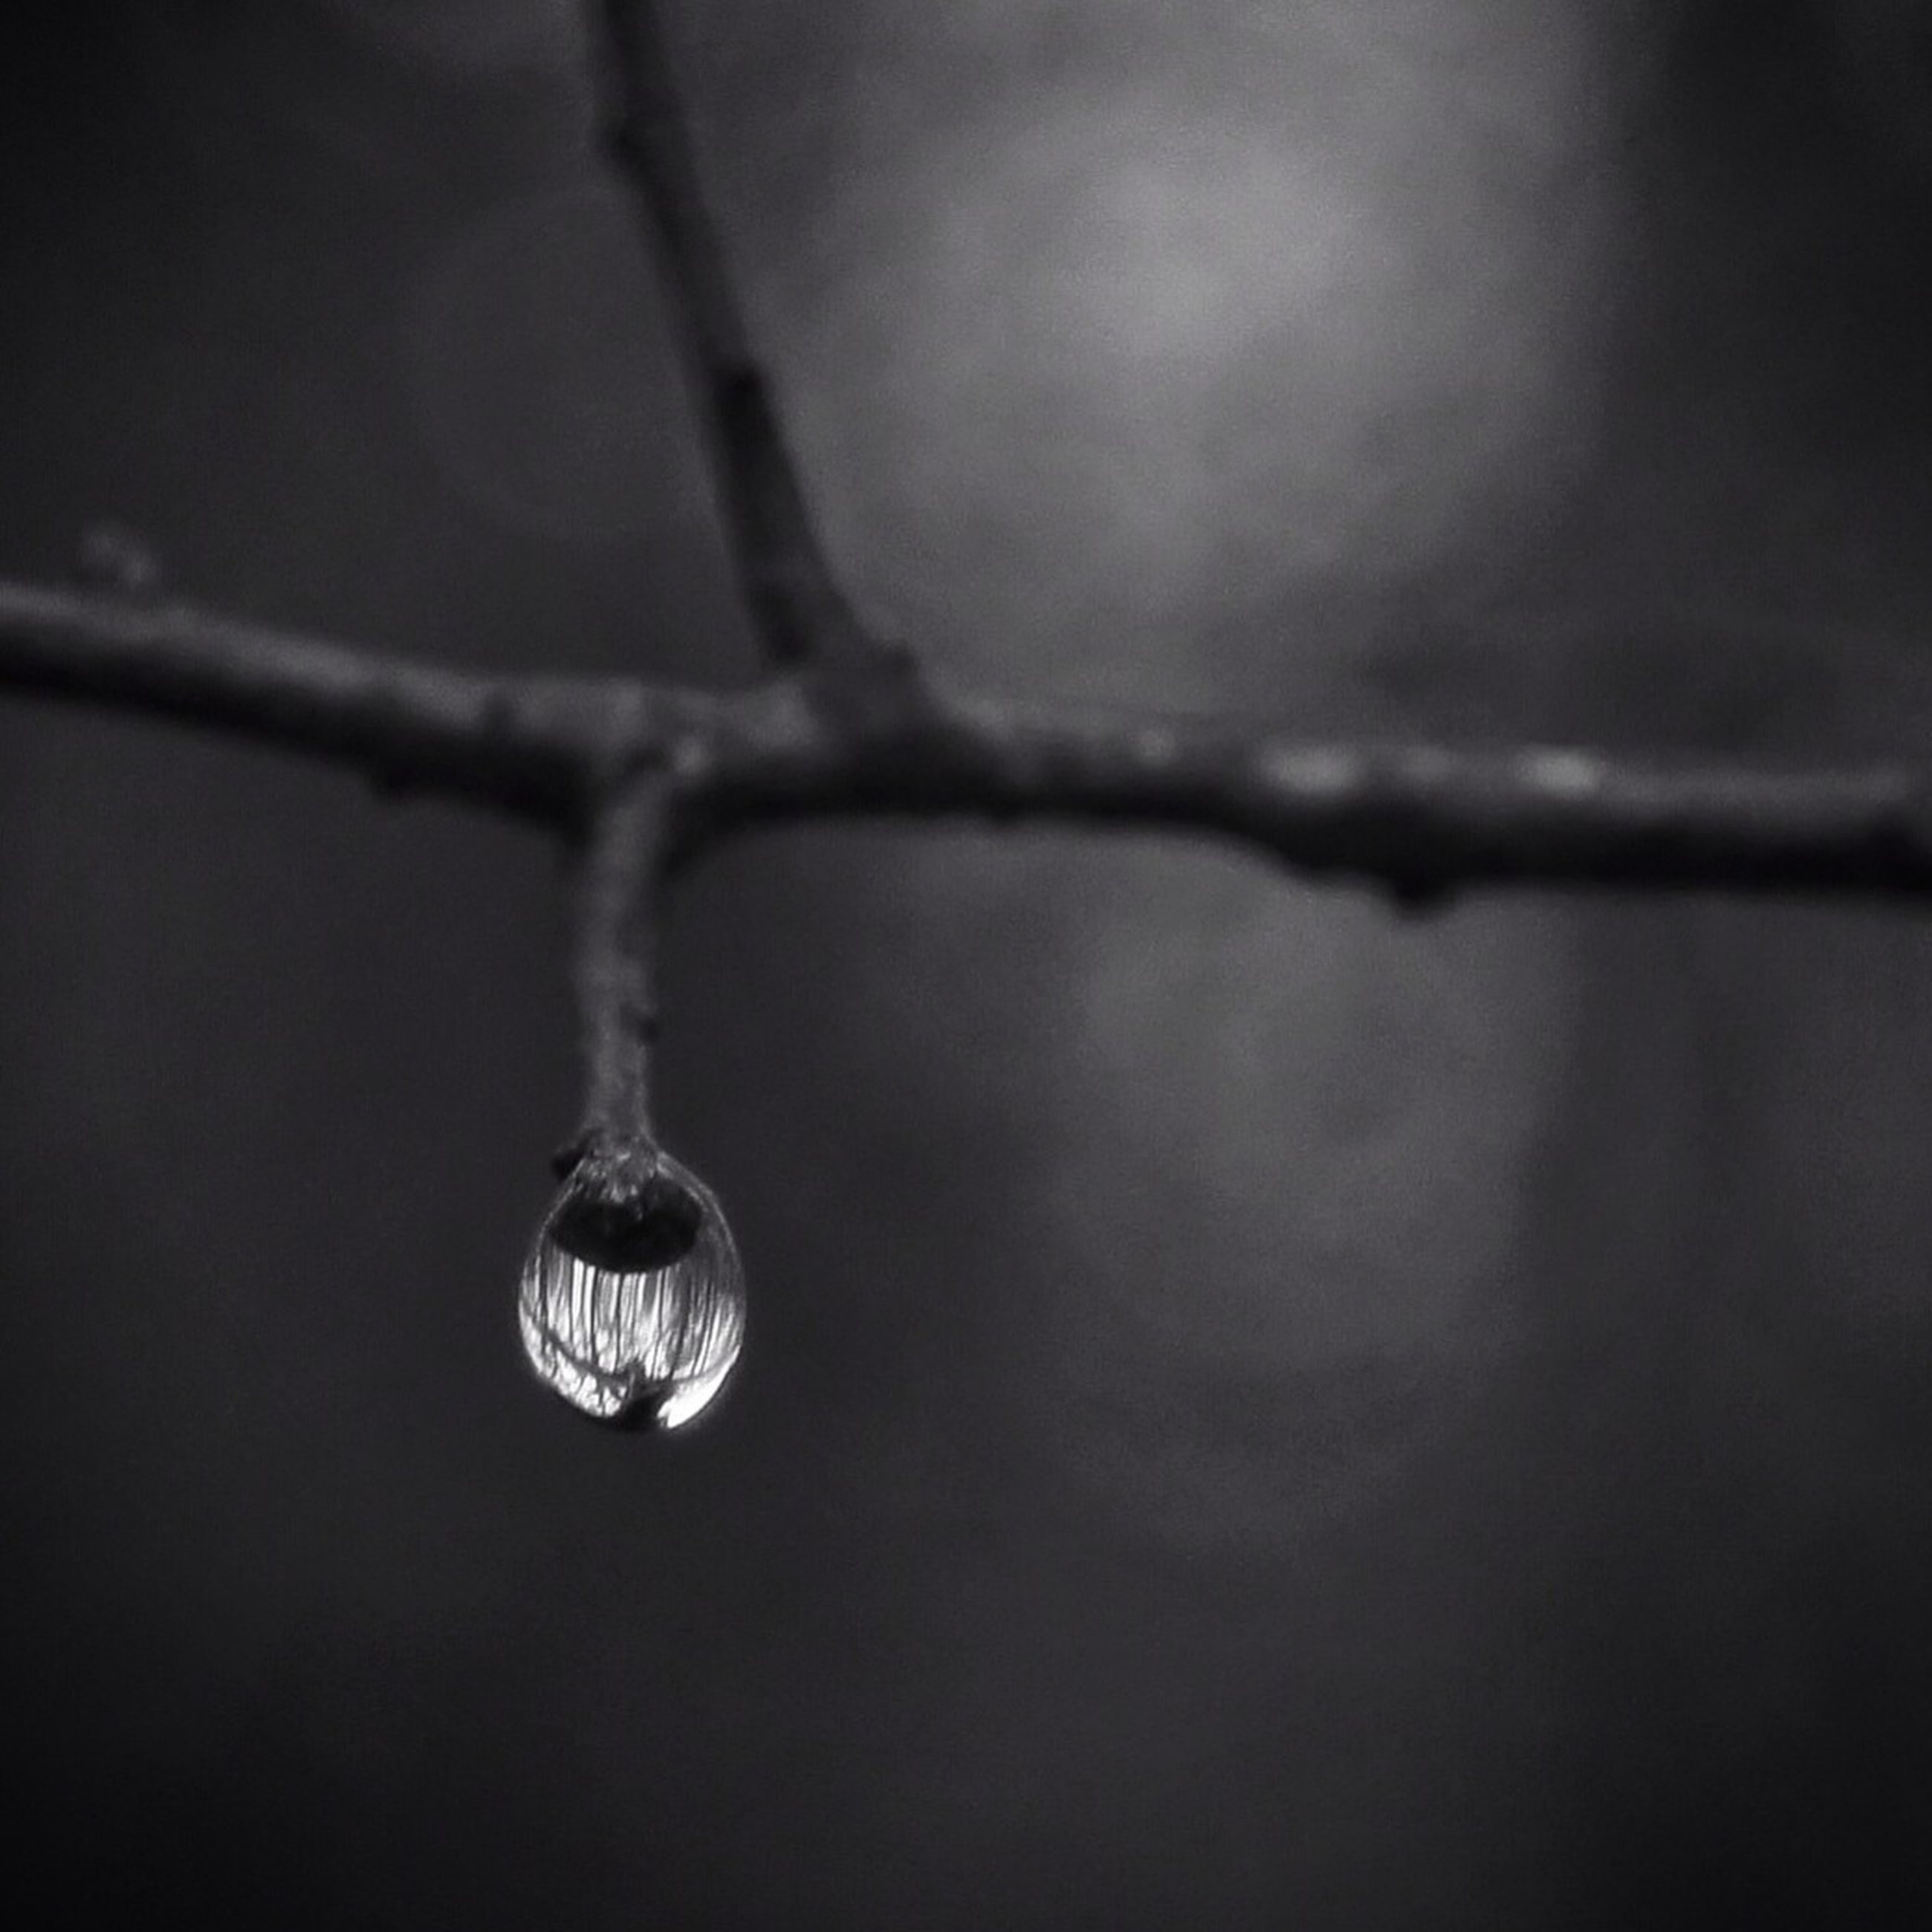 close-up, drop, focus on foreground, water, wet, hanging, selective focus, fragility, dew, twig, raindrop, nature, no people, purity, detail, rain, branch, indoors, weather, day